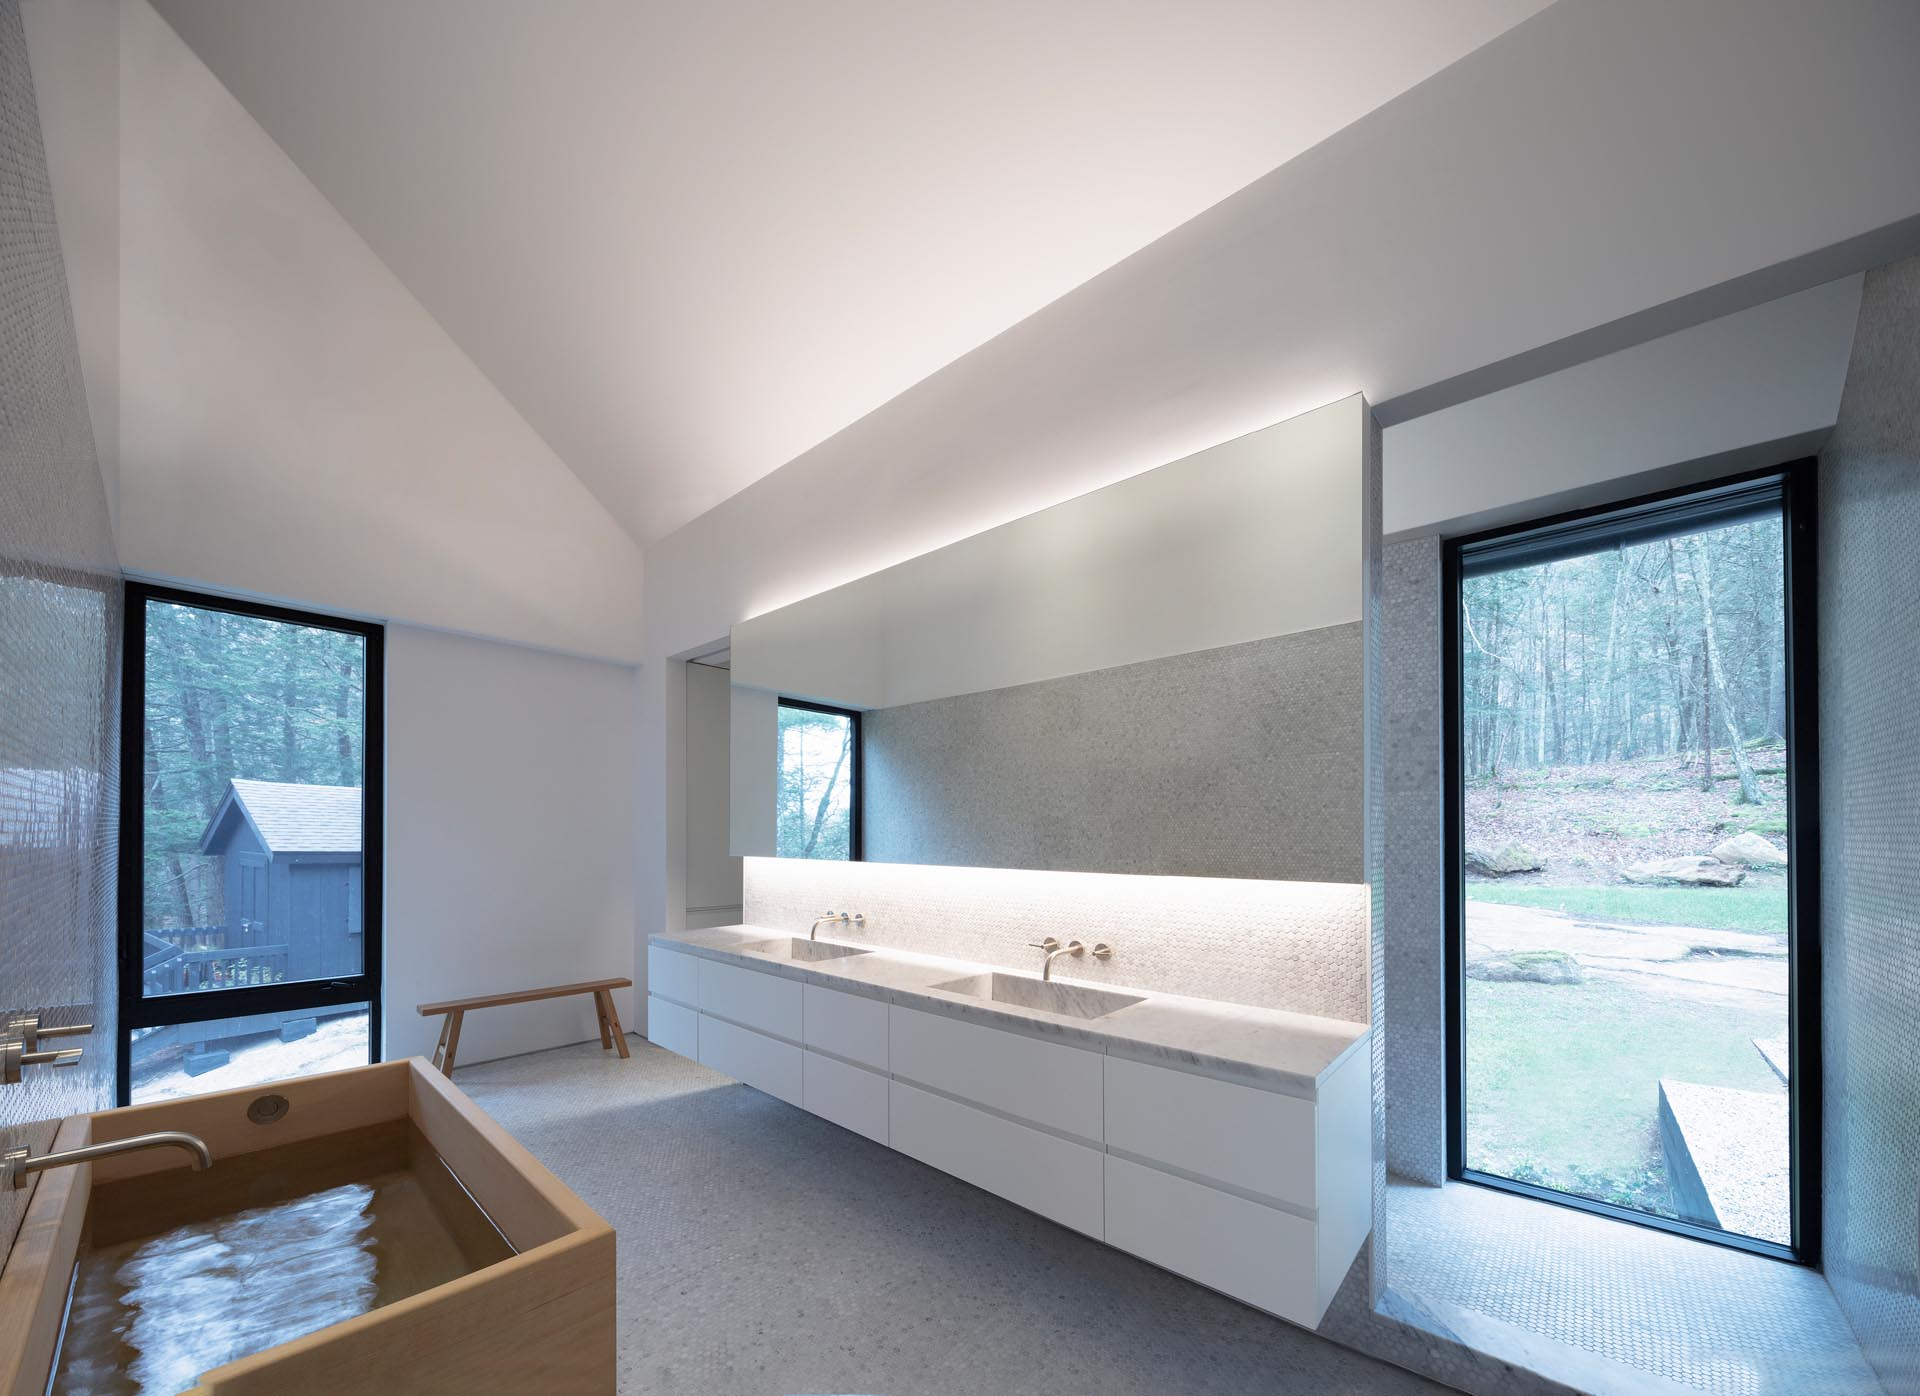 A modern master bathroom with a wood soaking tub, a backlit mirror, a double-sink floating vanity, and a sloped ceiling.